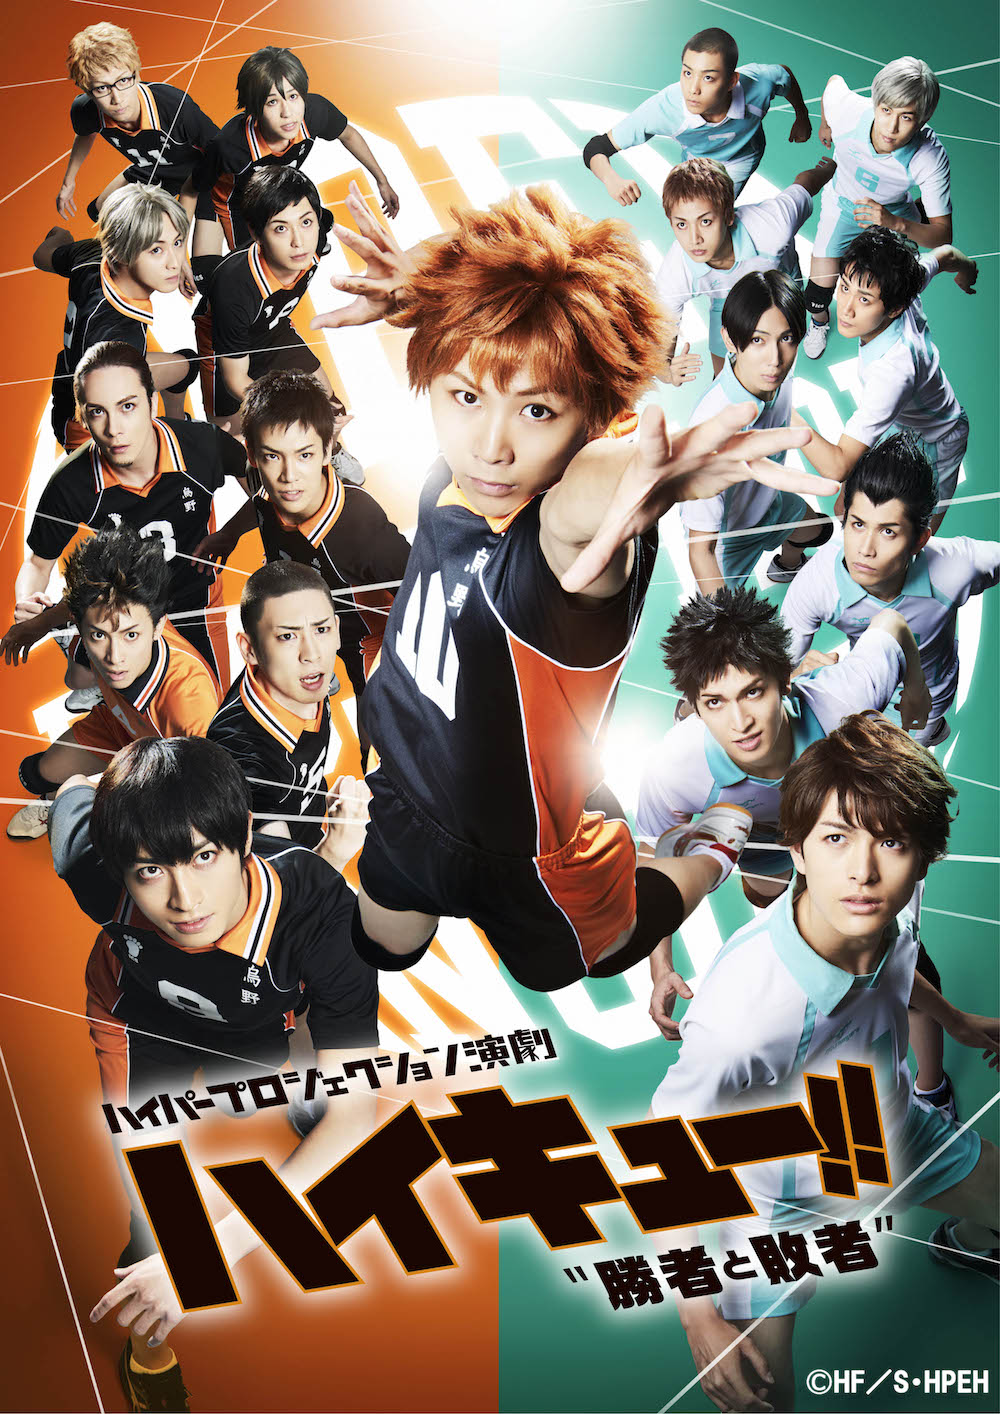 Poster for Musical Hyper Projection Engeki Haikyu!! The Winner and Loser |